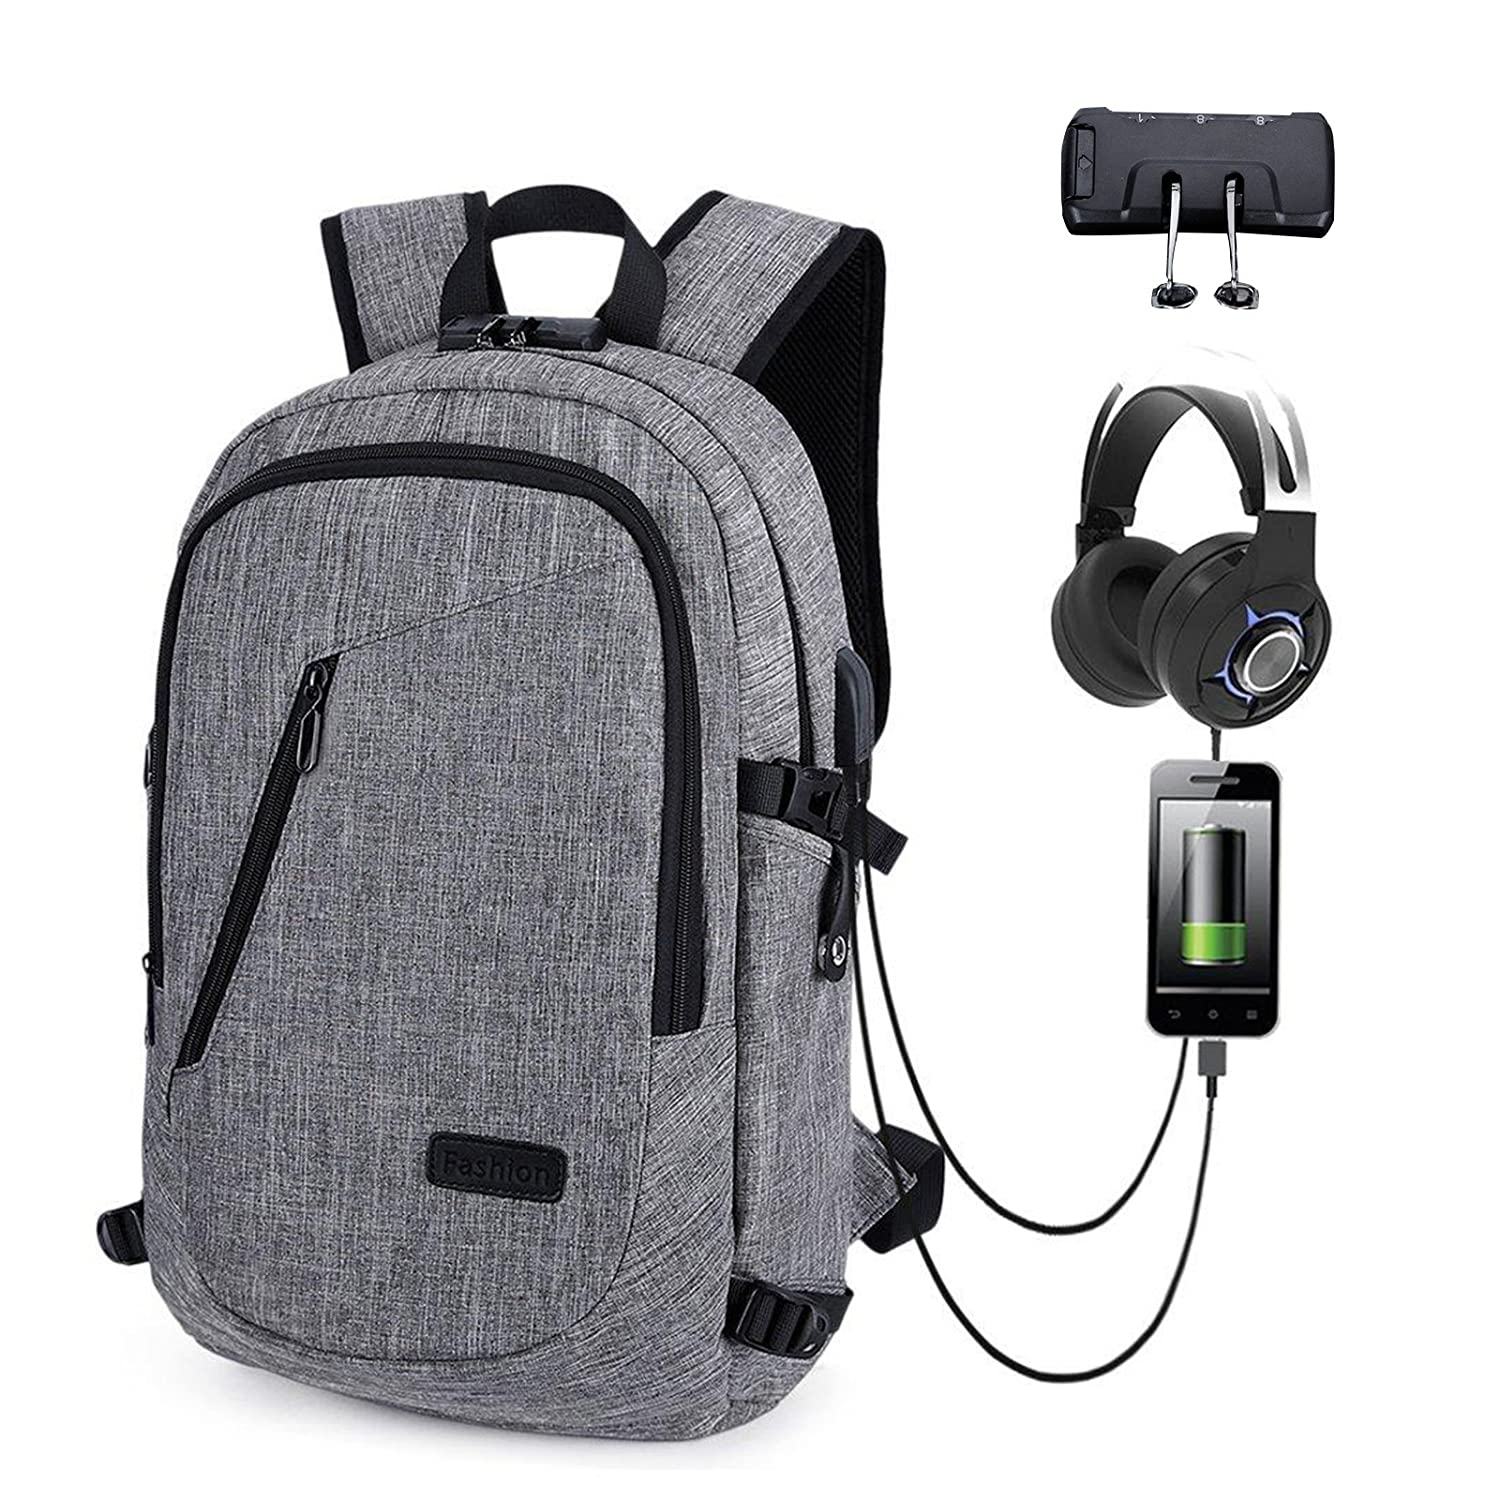 Antil Theft Backpack,waterproof material Business School Bag with USB Charging and Headphone Port for College Work Fit 15.6 Inch Laptop